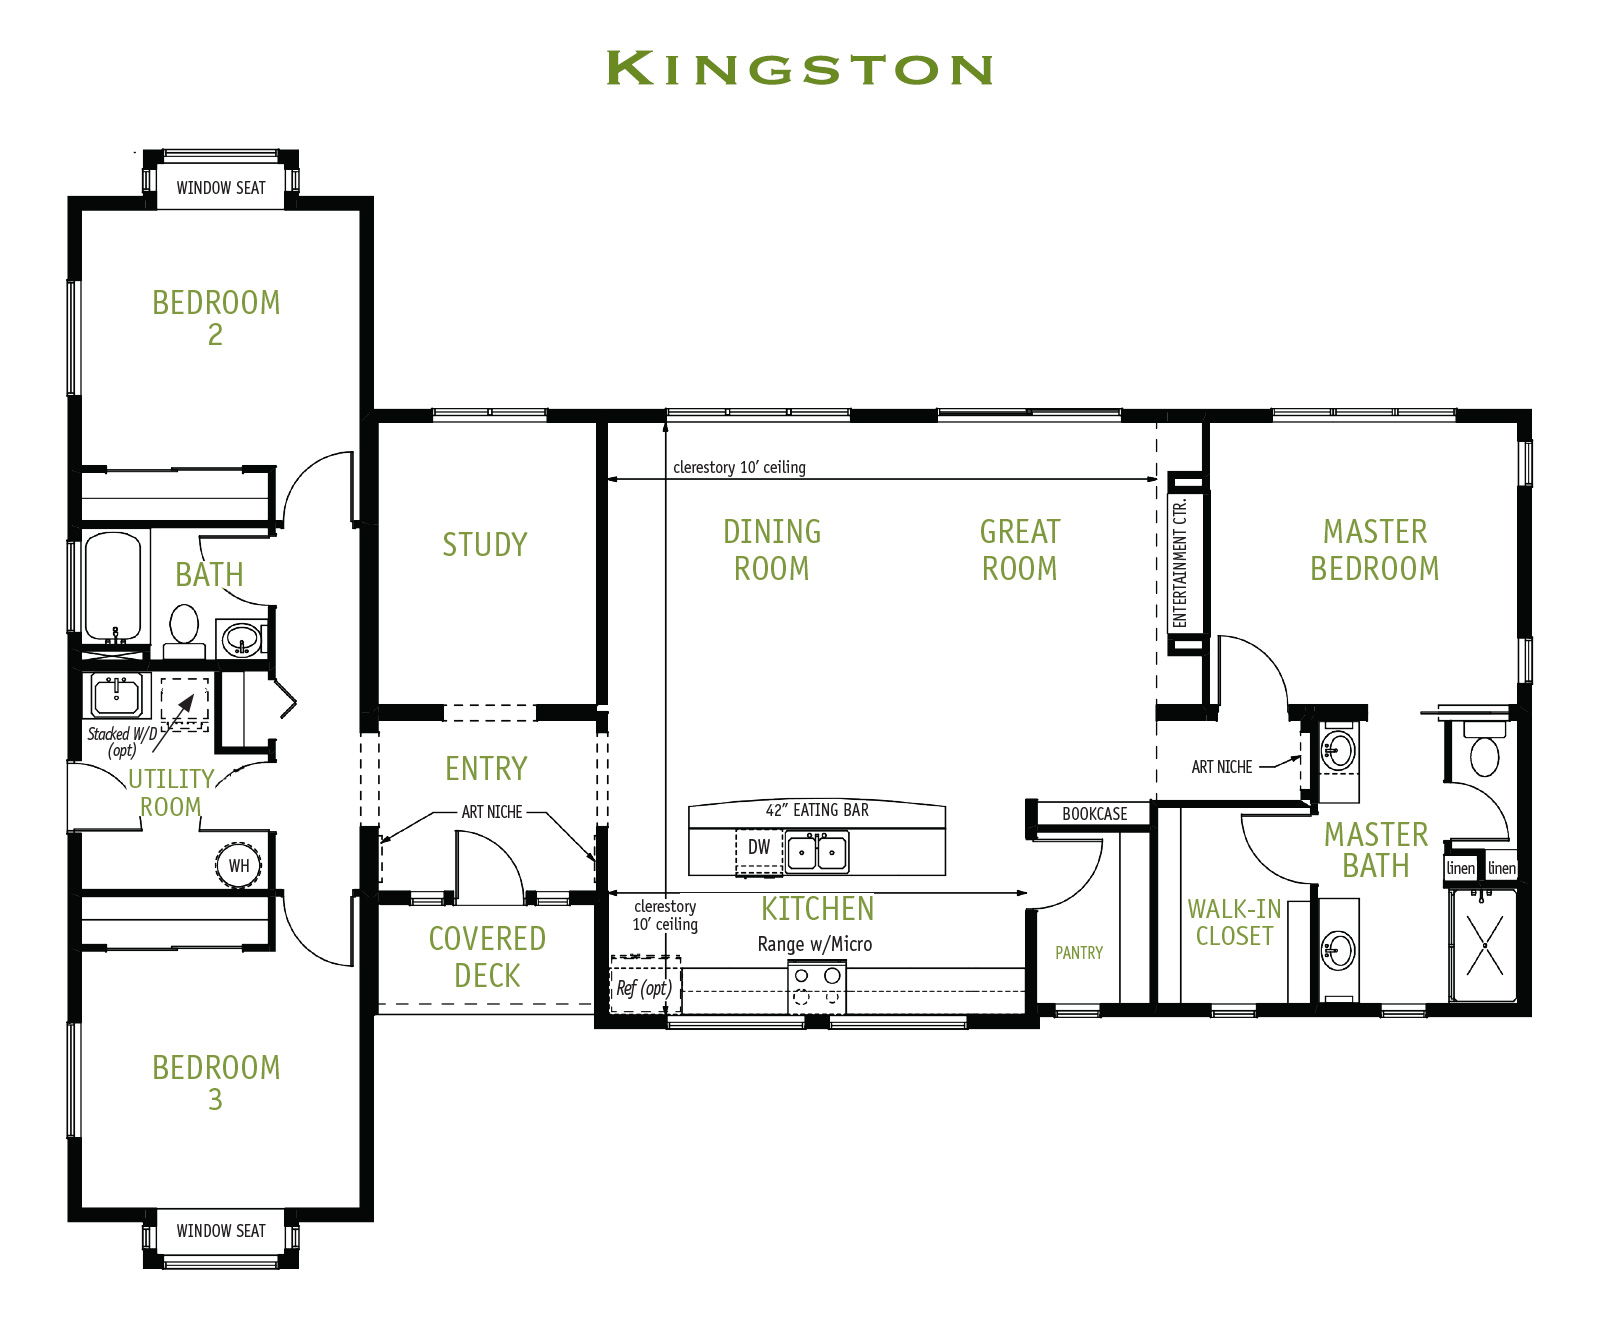 Timberland Homes Kingston Floorplan